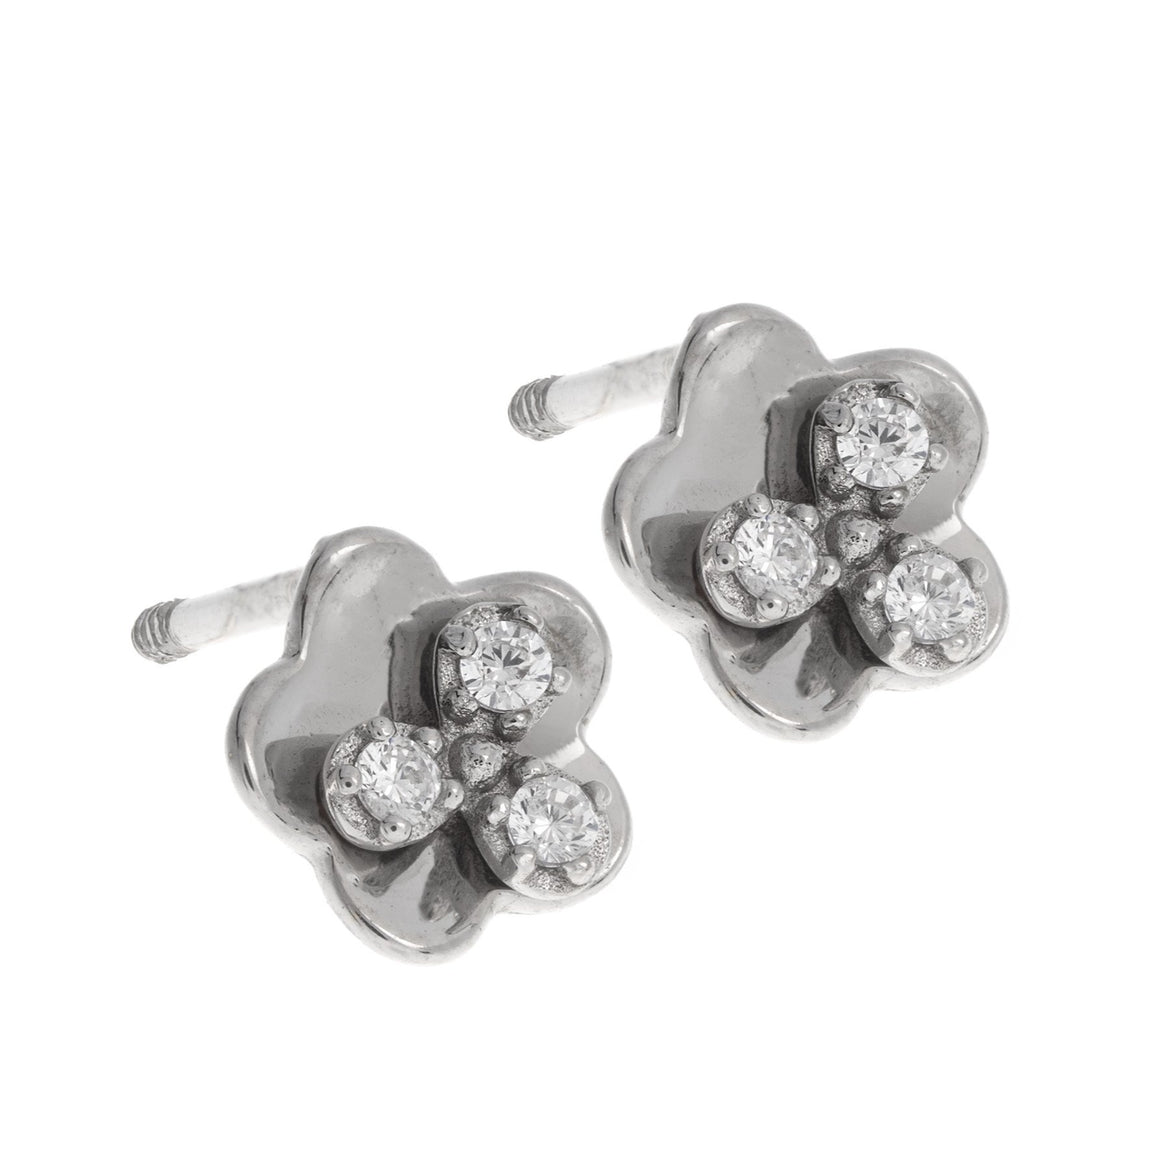 18ct White Gold Earrings set with Cubic Zirconia stones (E-2964) (online price only)